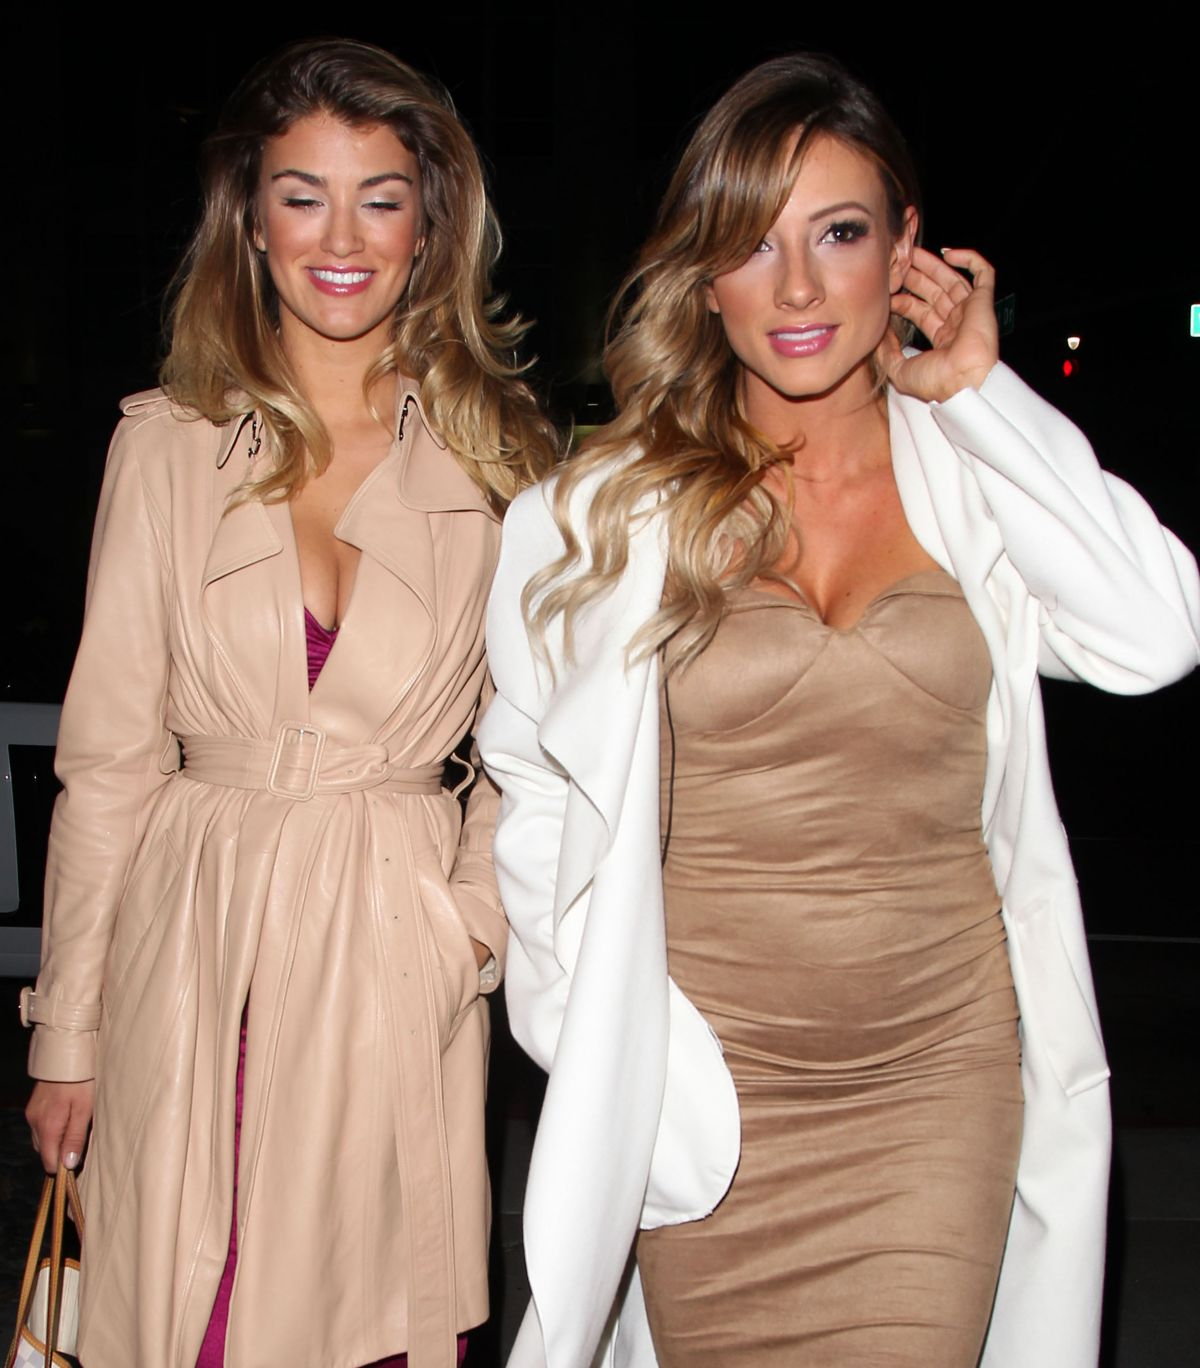 AMY WILLERTON and PAIGE HATHAWAY at Caulfield